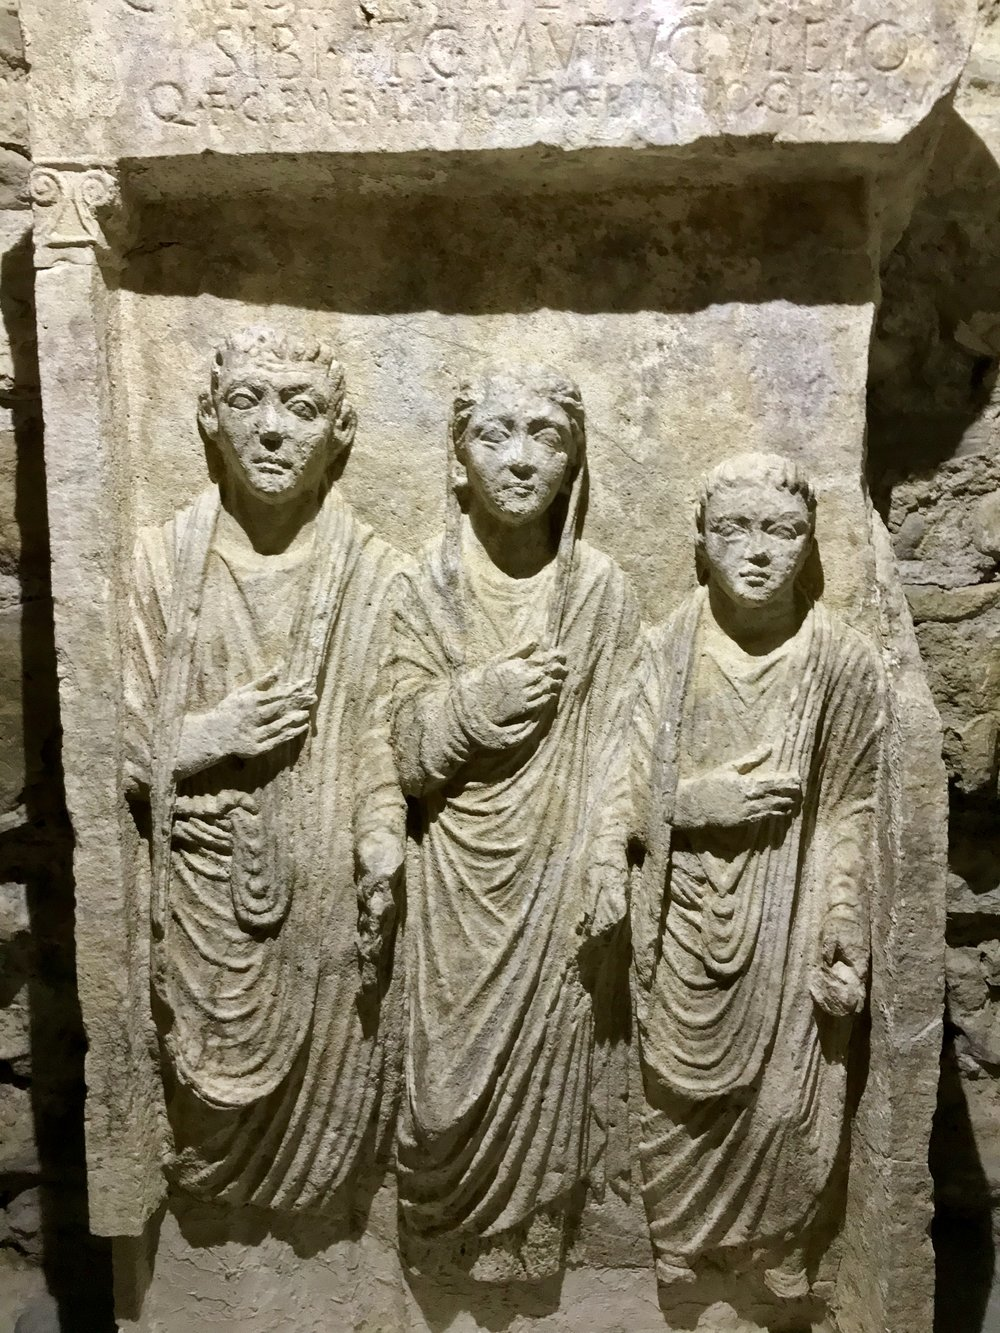 Ancient Roman low relief sculpture on display in the Elbasan castle